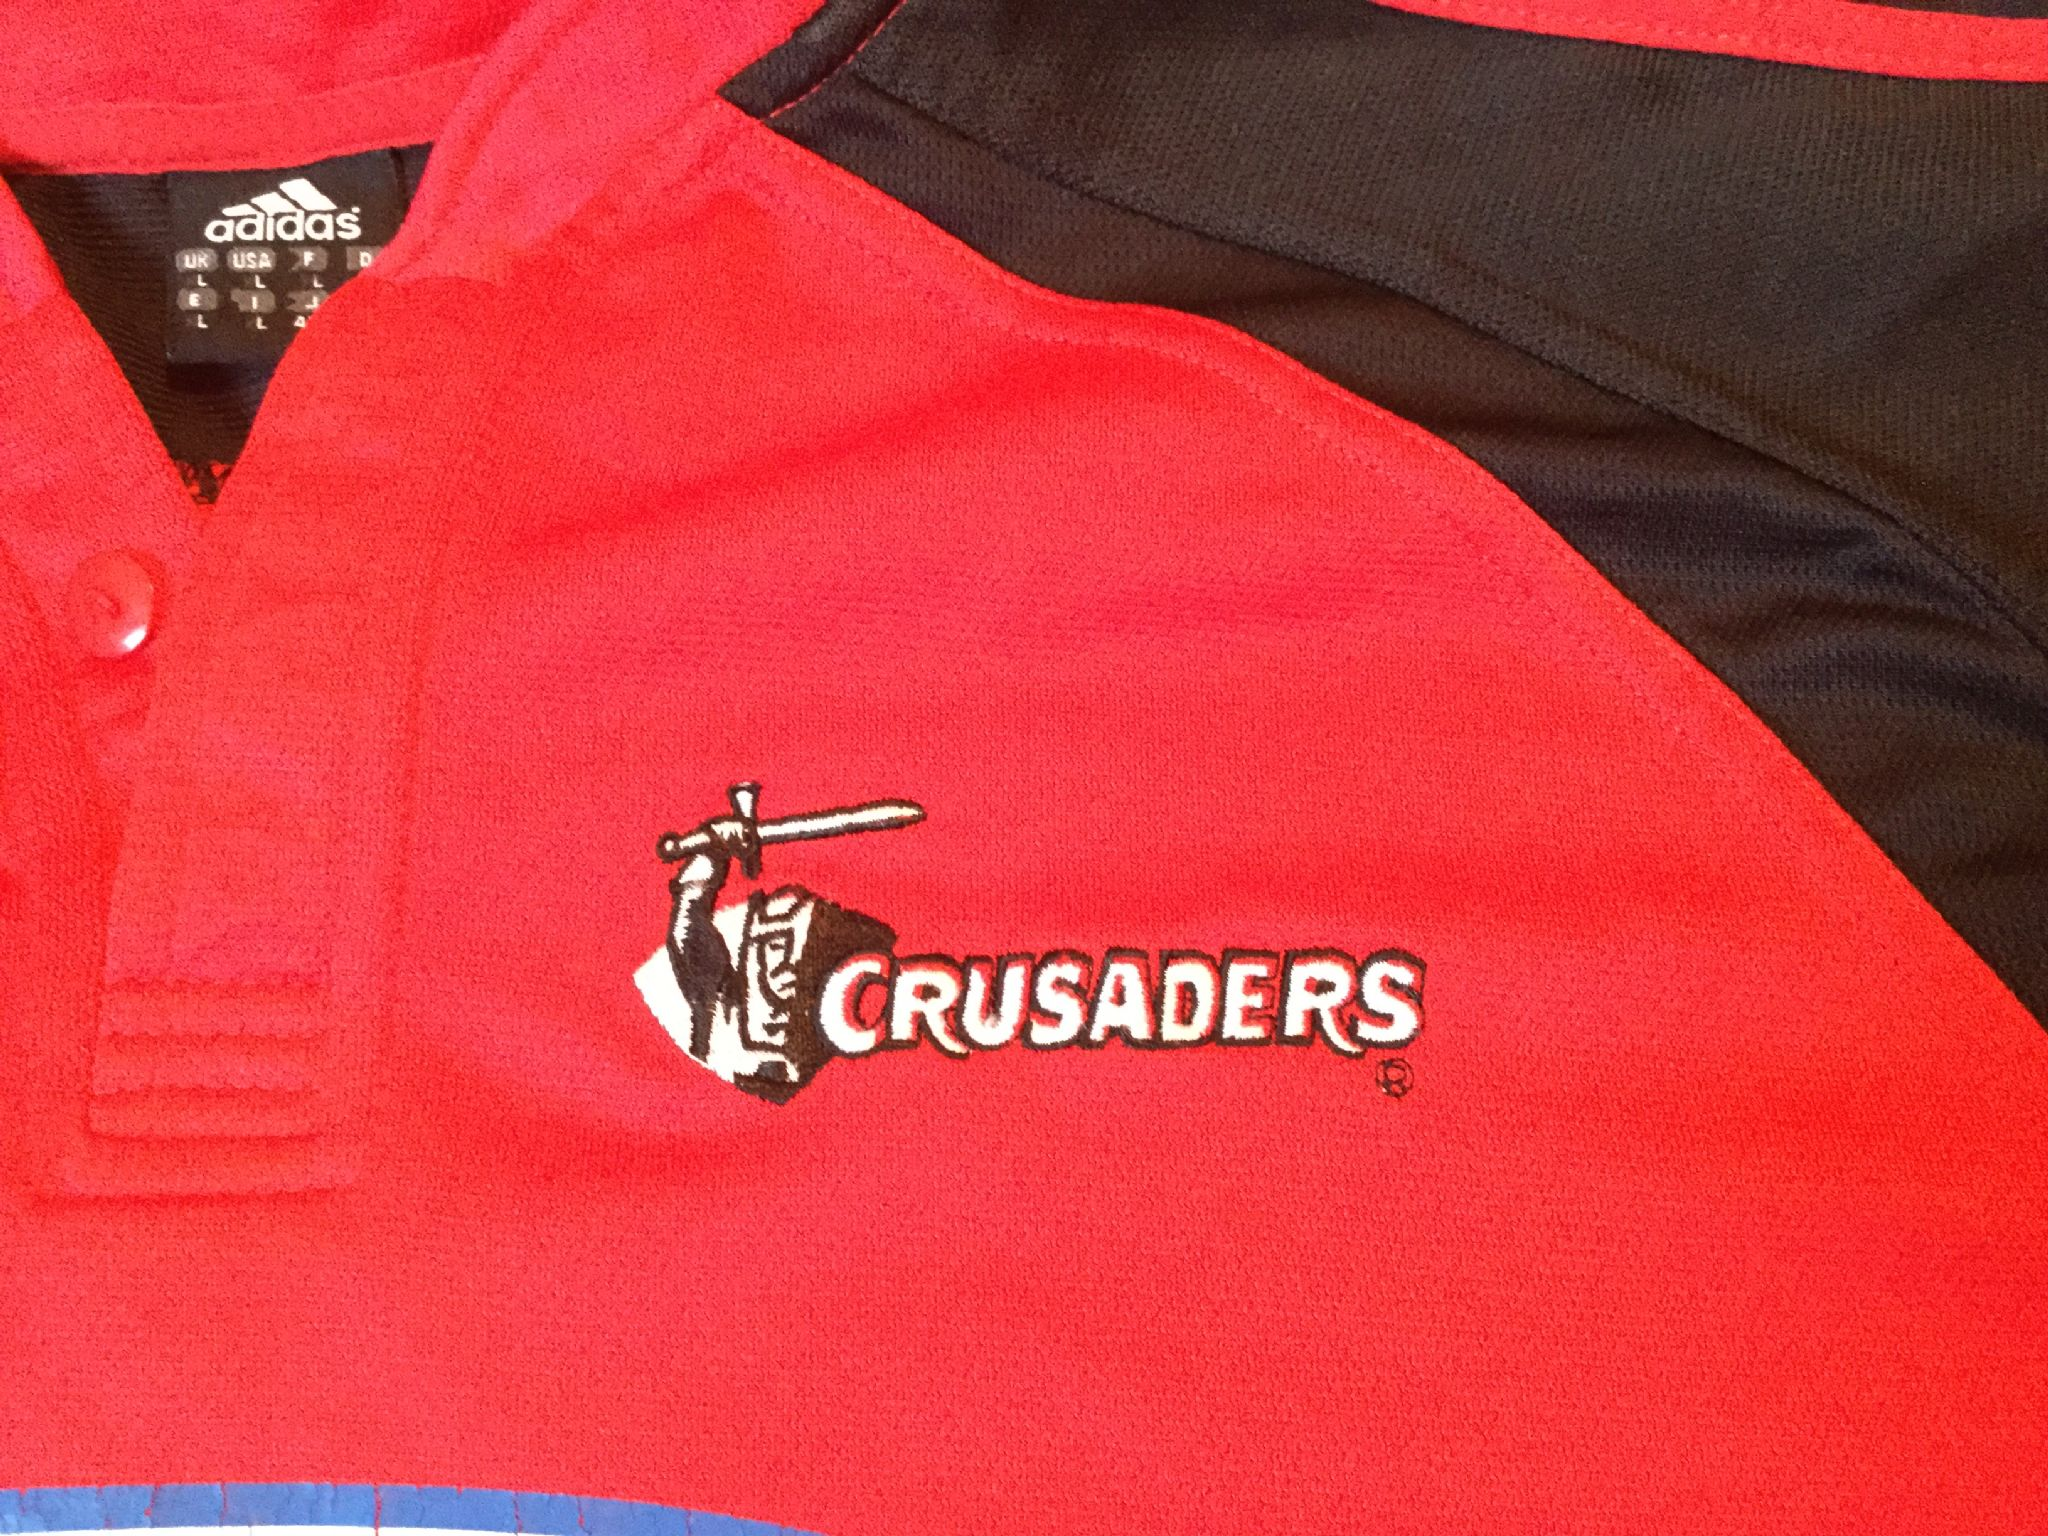 5688fff8b21 Classic Rugby Shirts | 2005 Crusaders Vintage Old Retro Jersey